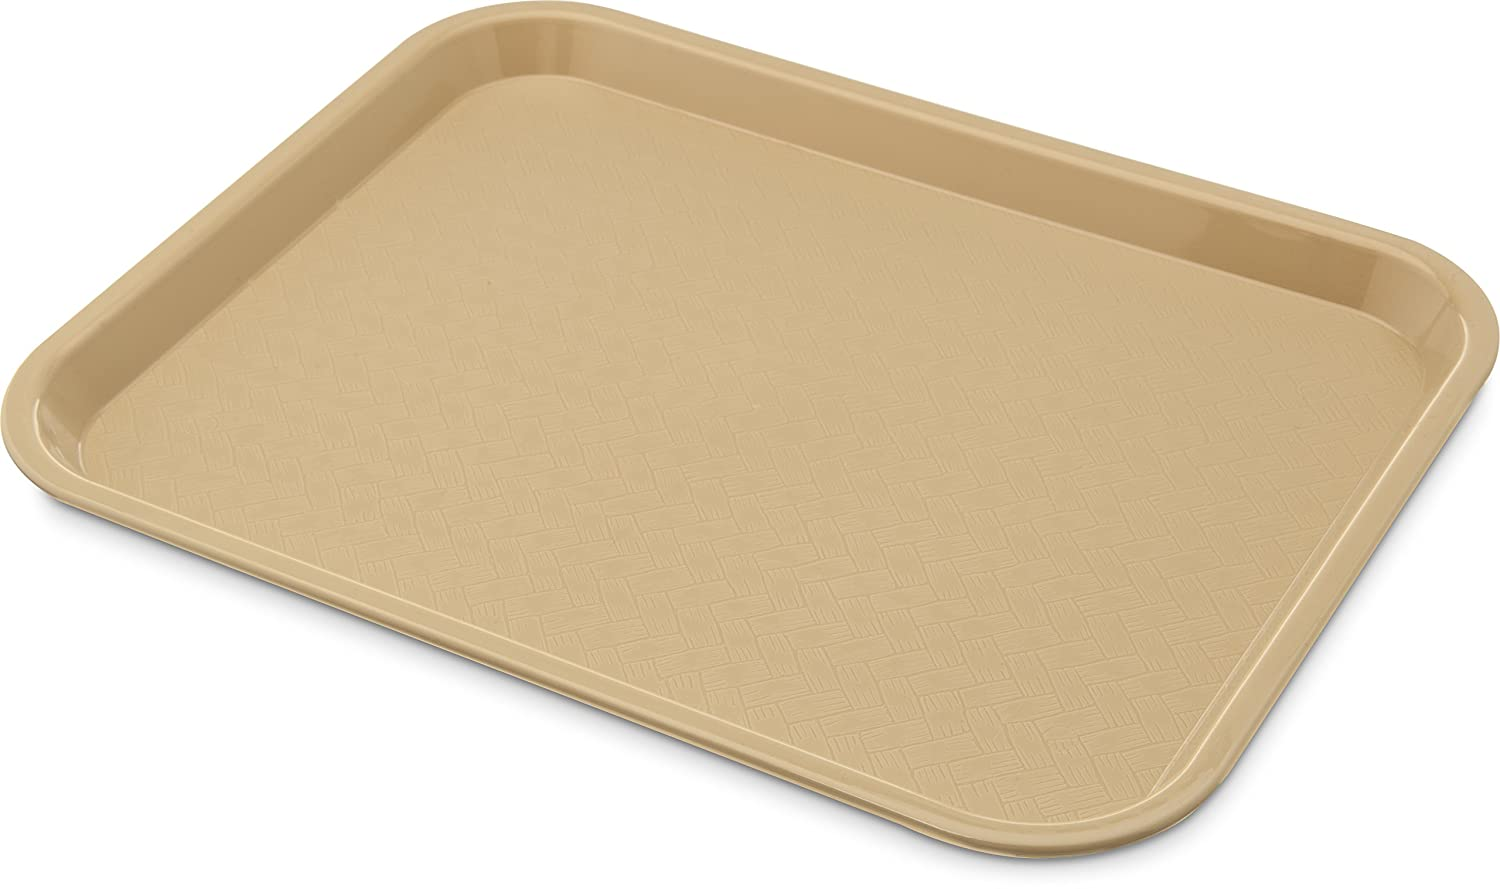 Carlisle CT101406 Café Standard Cafeteria / Fast Food Tray, 10